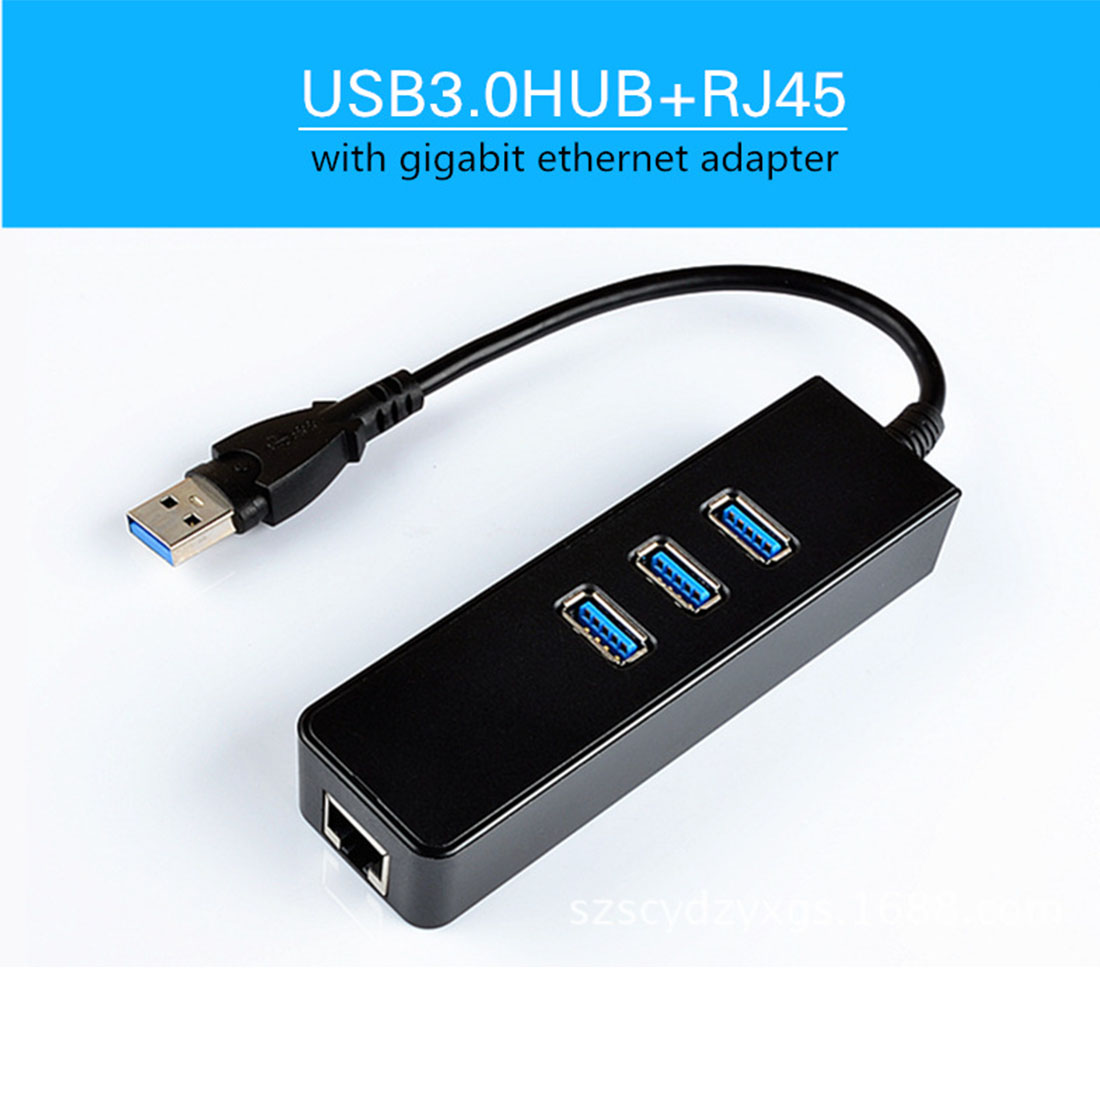 NOYOKERE USB 3.0 1000Mbps Gigabit Etherneti adapter USB to RJ45 Lan võrgukaart 3 Port USB3.0 Hub